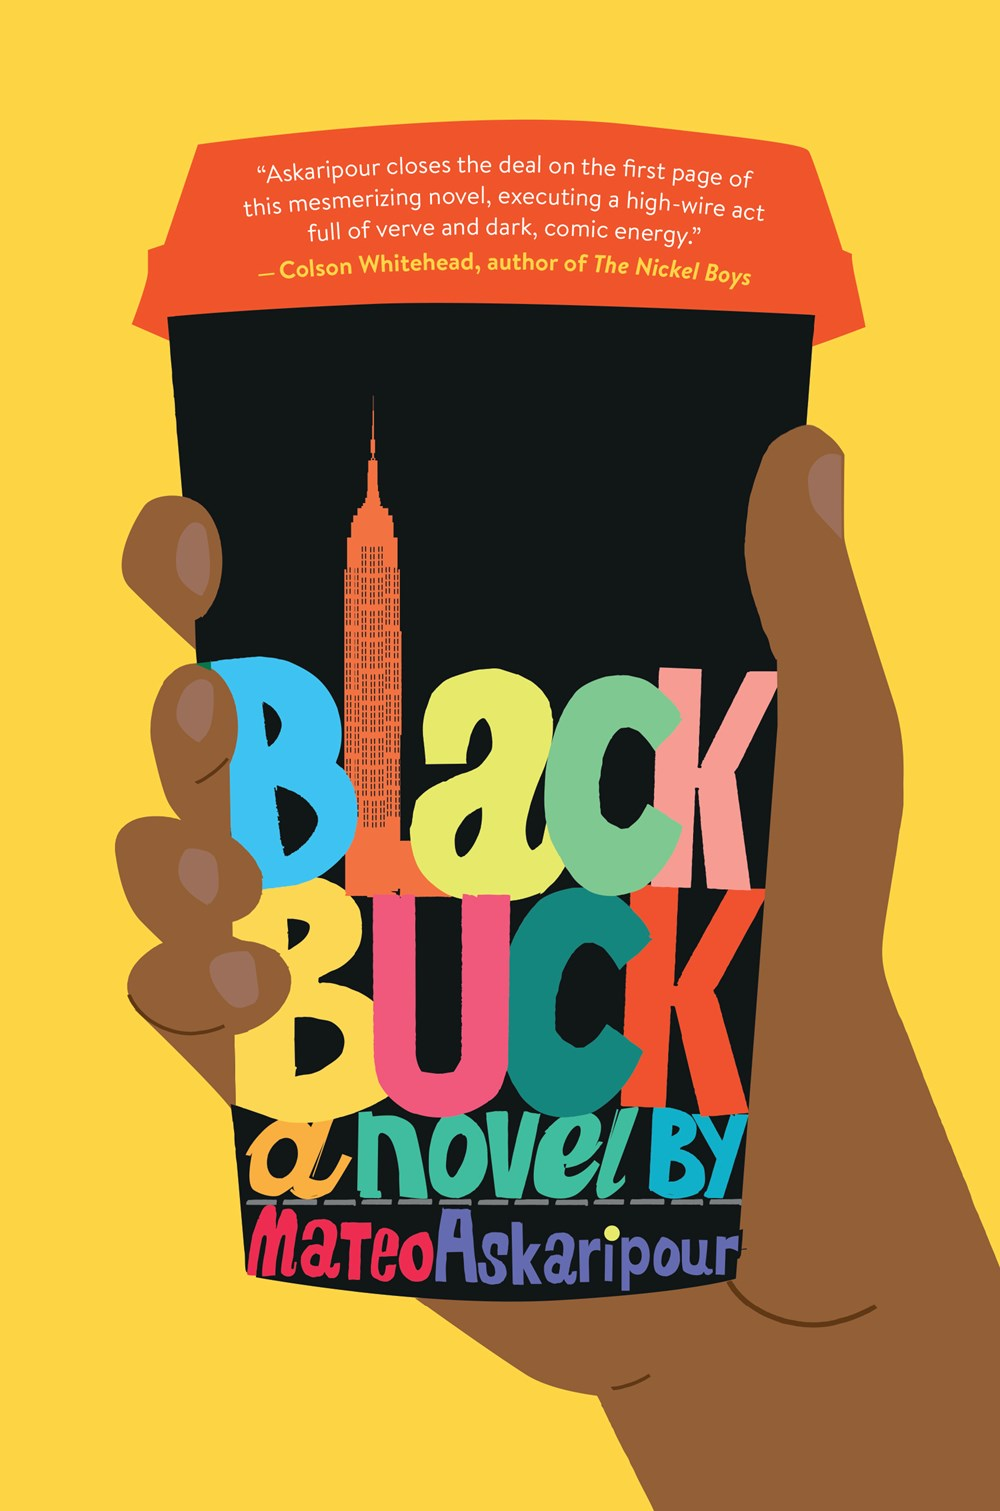 Jenna Bush Hager Picks 'Black Buck' for January Book Club | Book Pulse